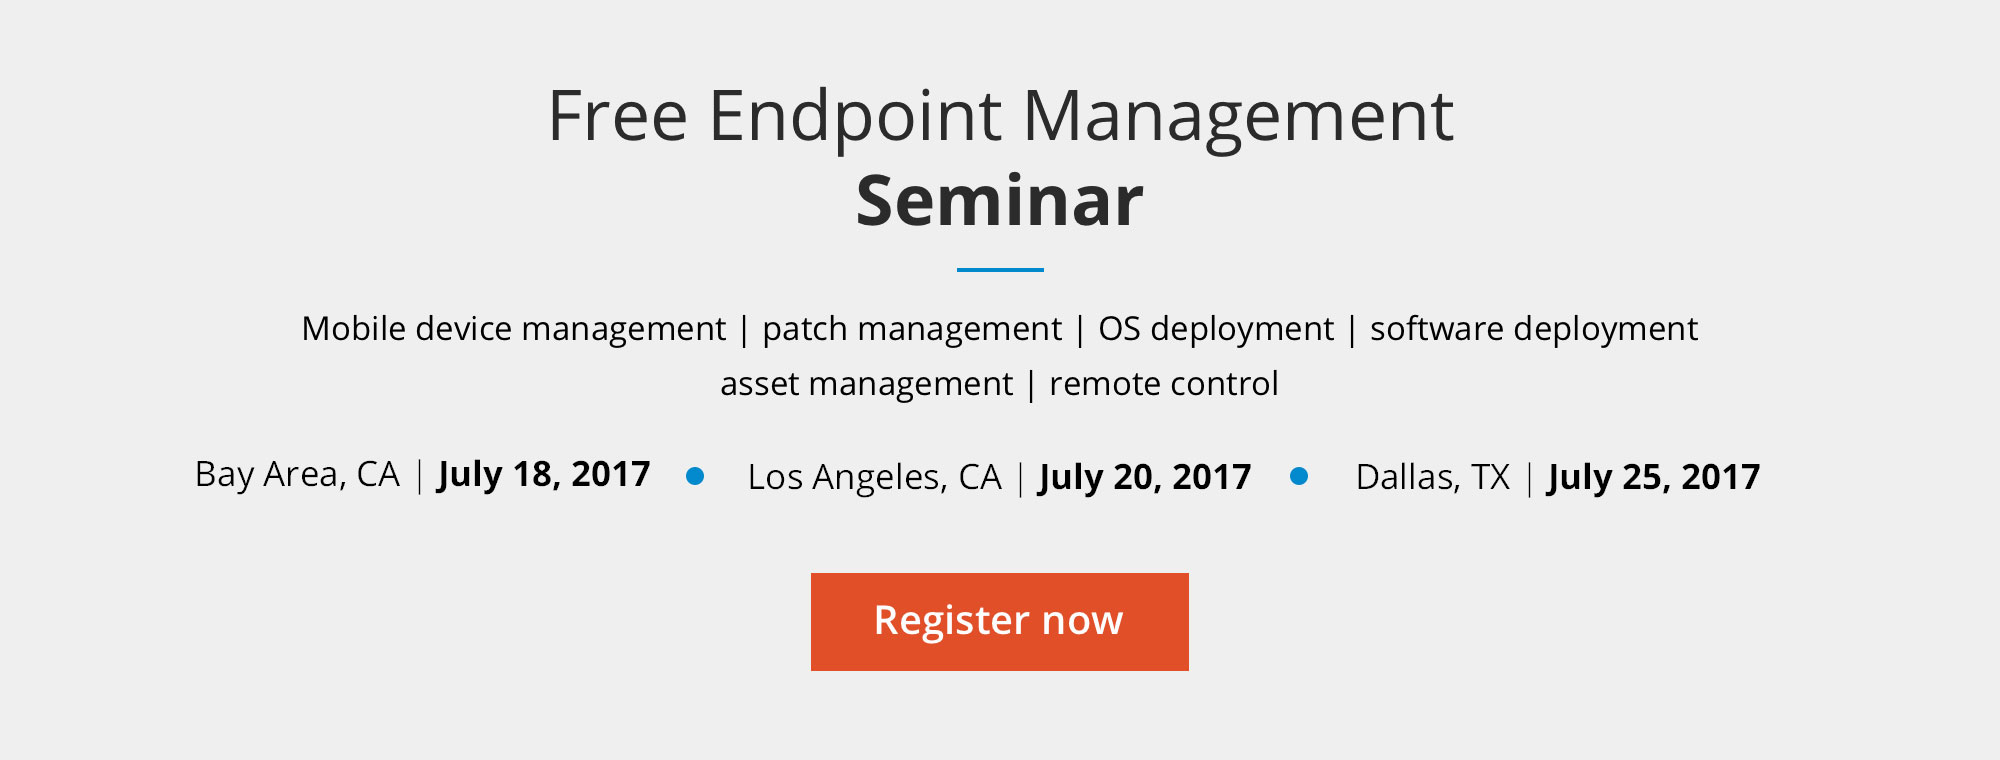 Enterprise Mobility and Endpoint Management SEMINAR